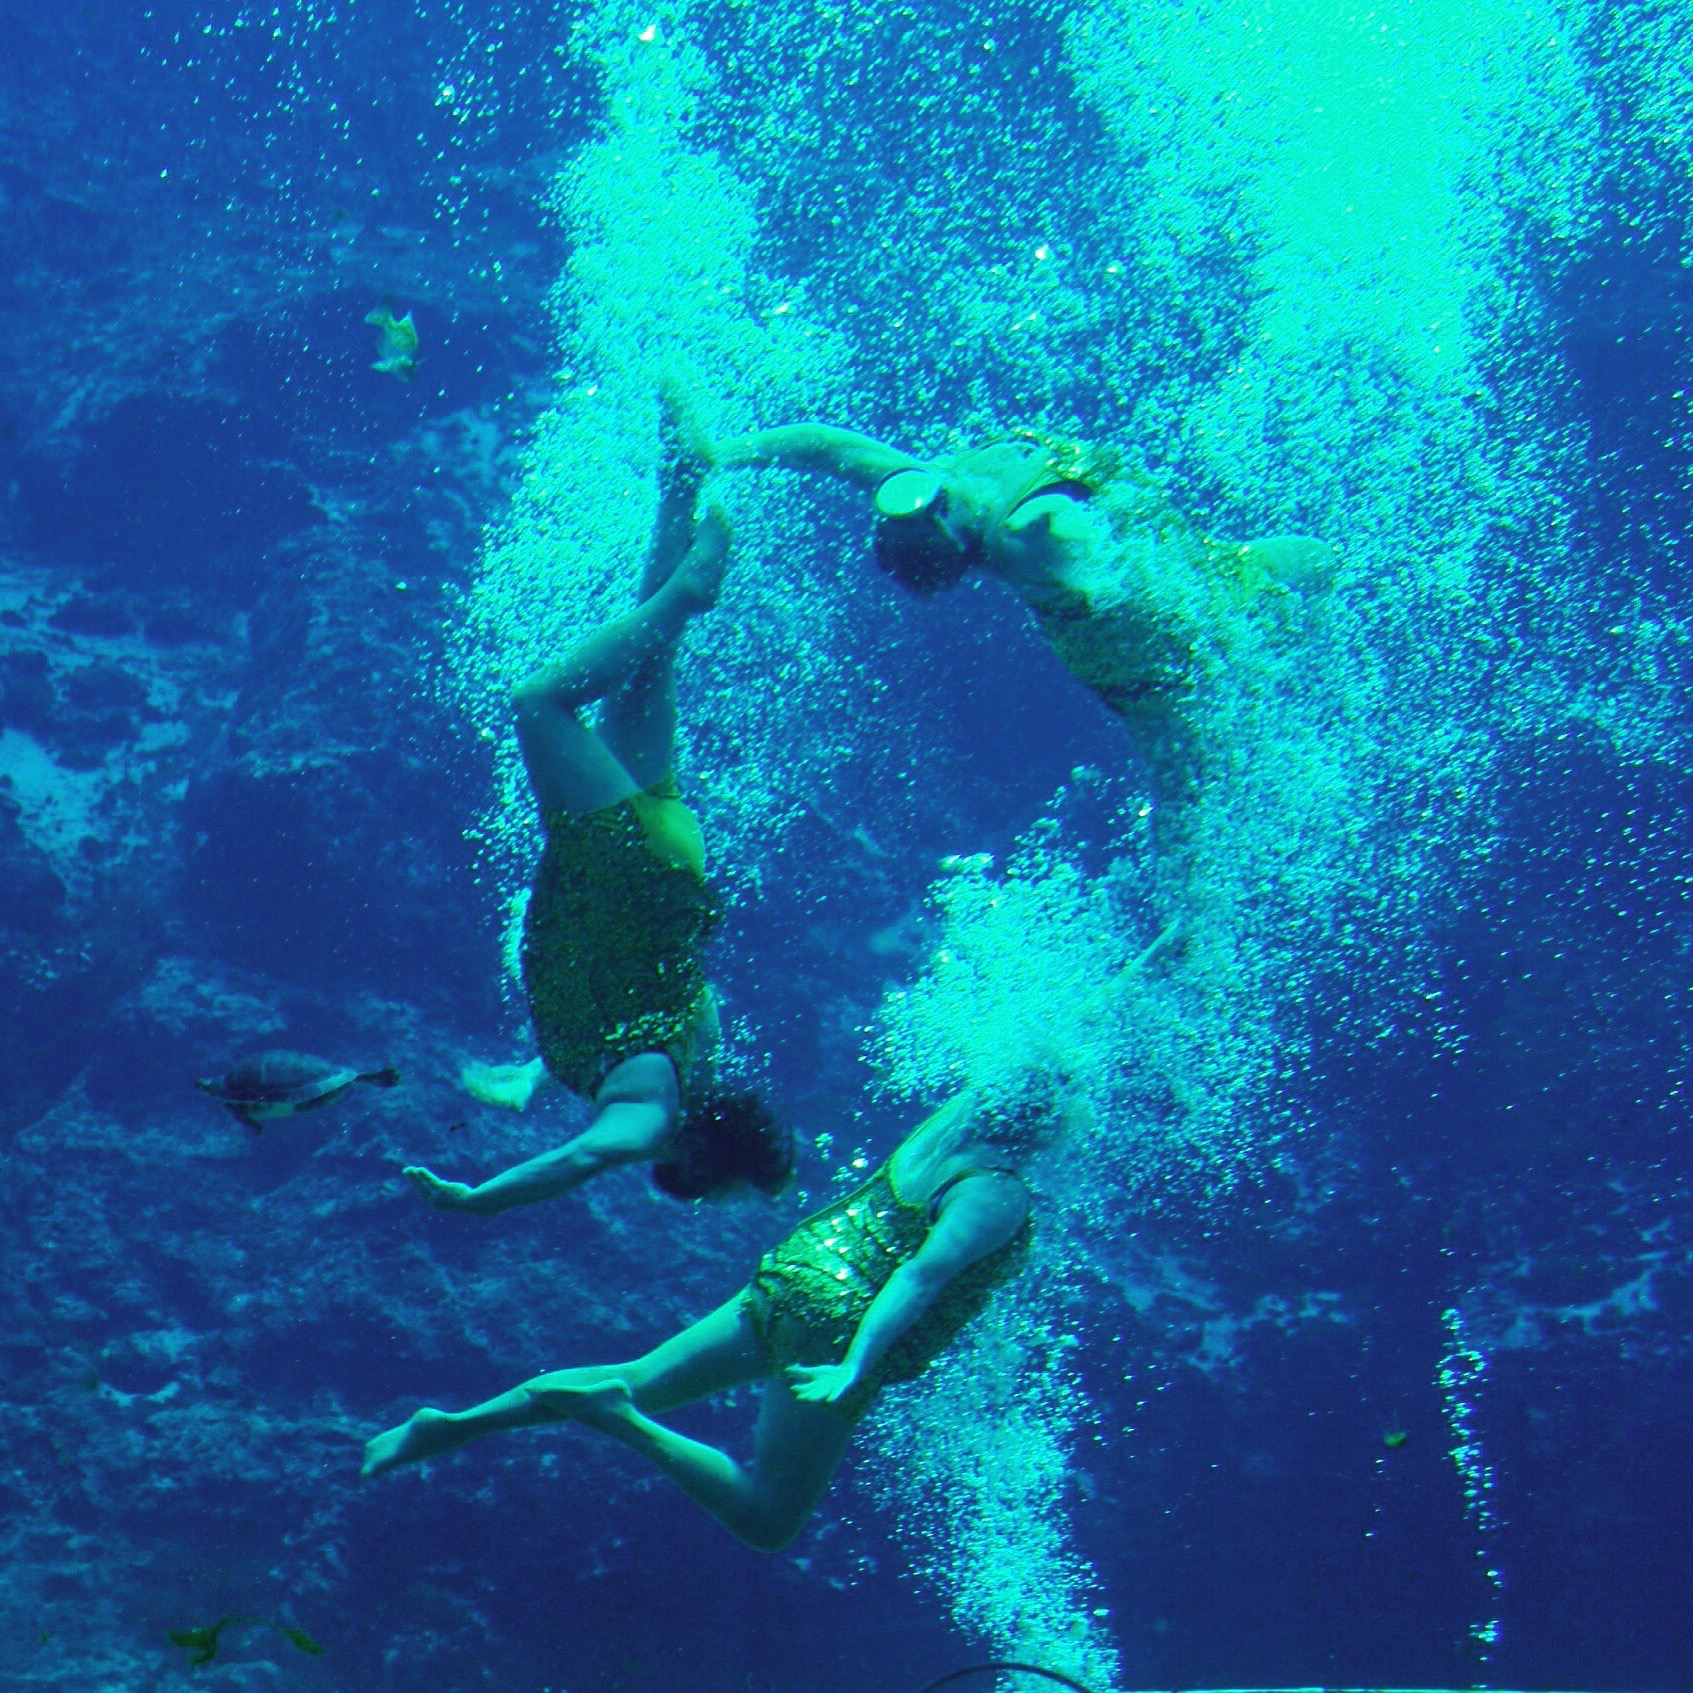 A few of the legendary Sirens of Weeki Wachee.